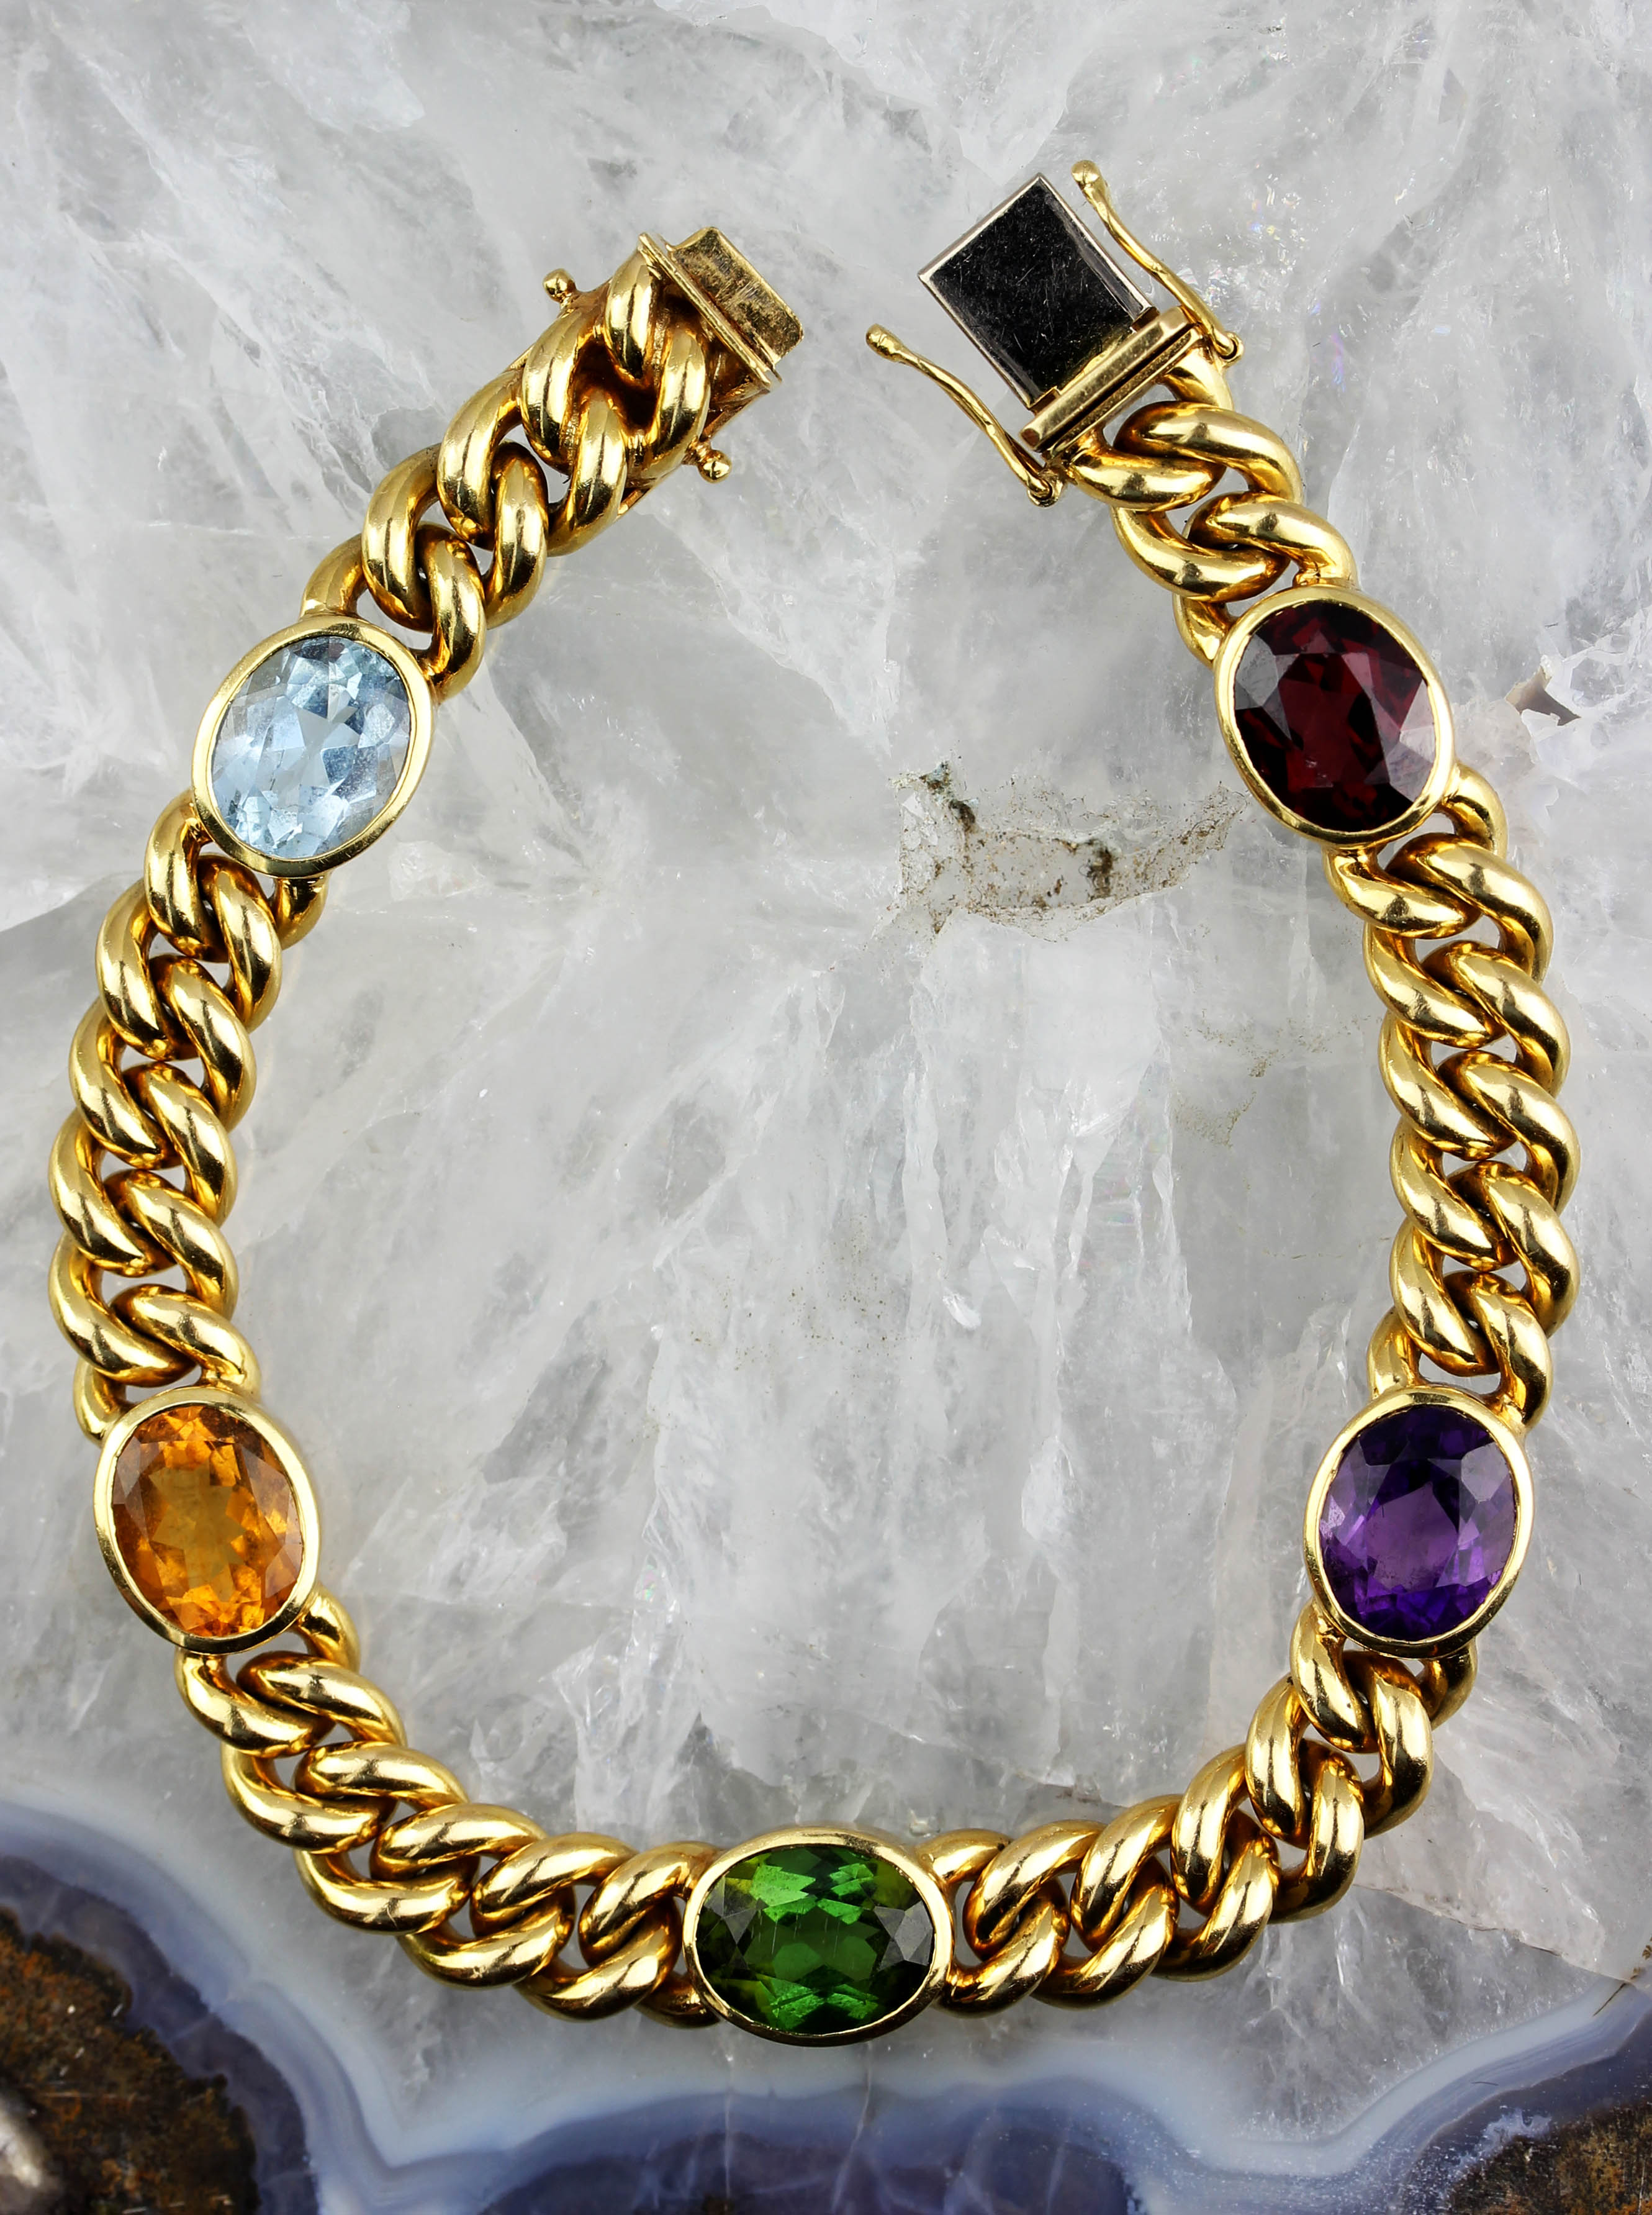 Beautiful gold bracelet with colorful stones